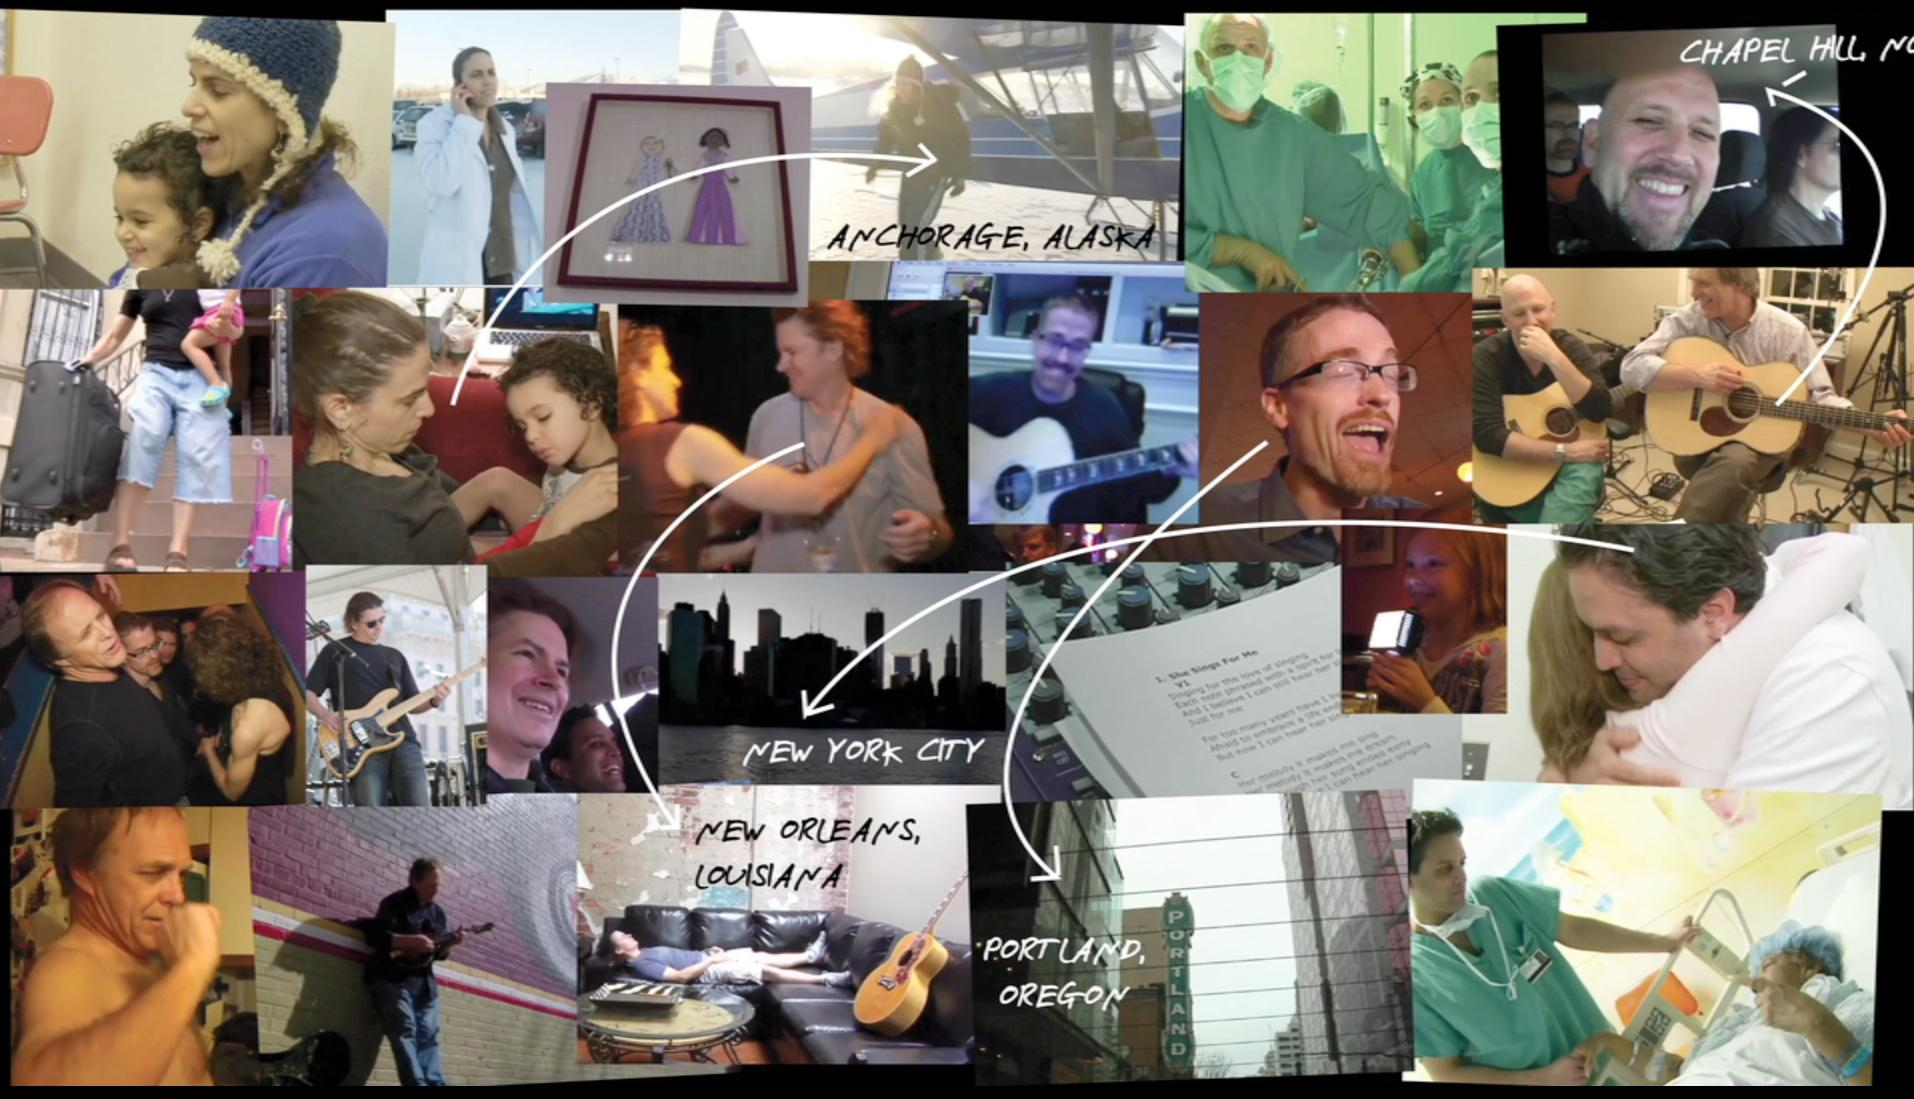 collage of images of NED band with some location captions